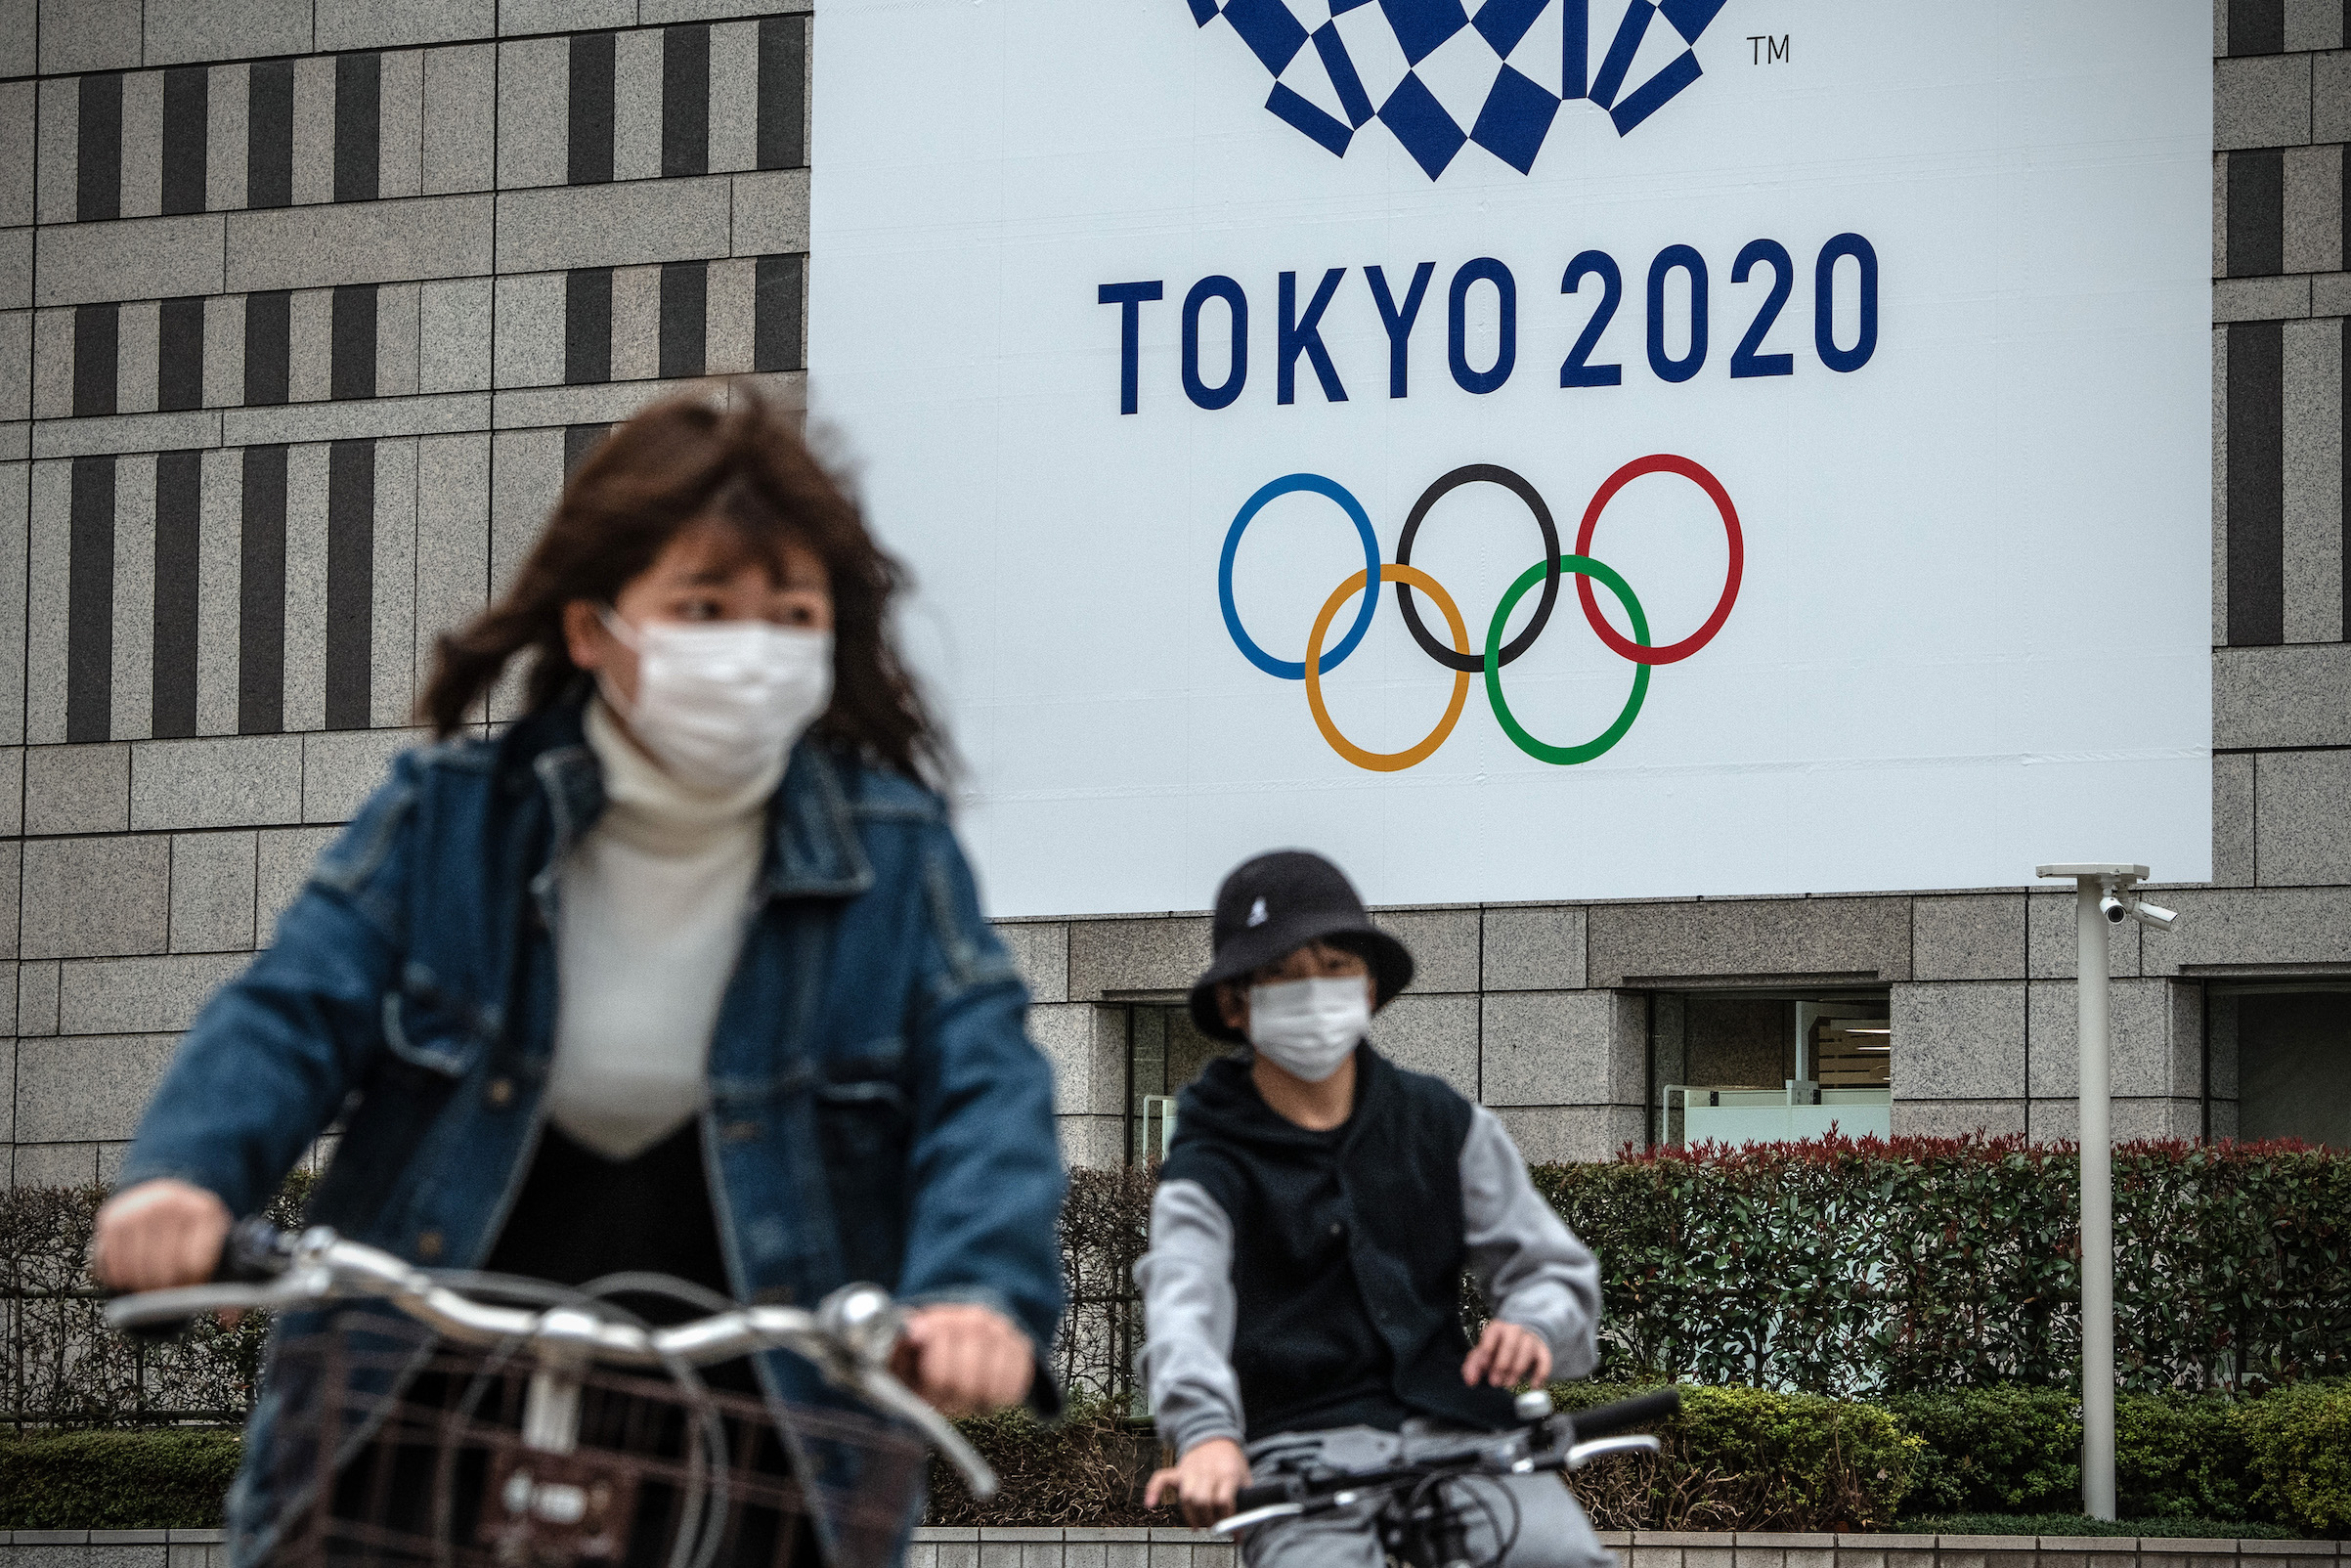 People cycle past a banner for the Tokyo Olympics on March 13 in Tokyo